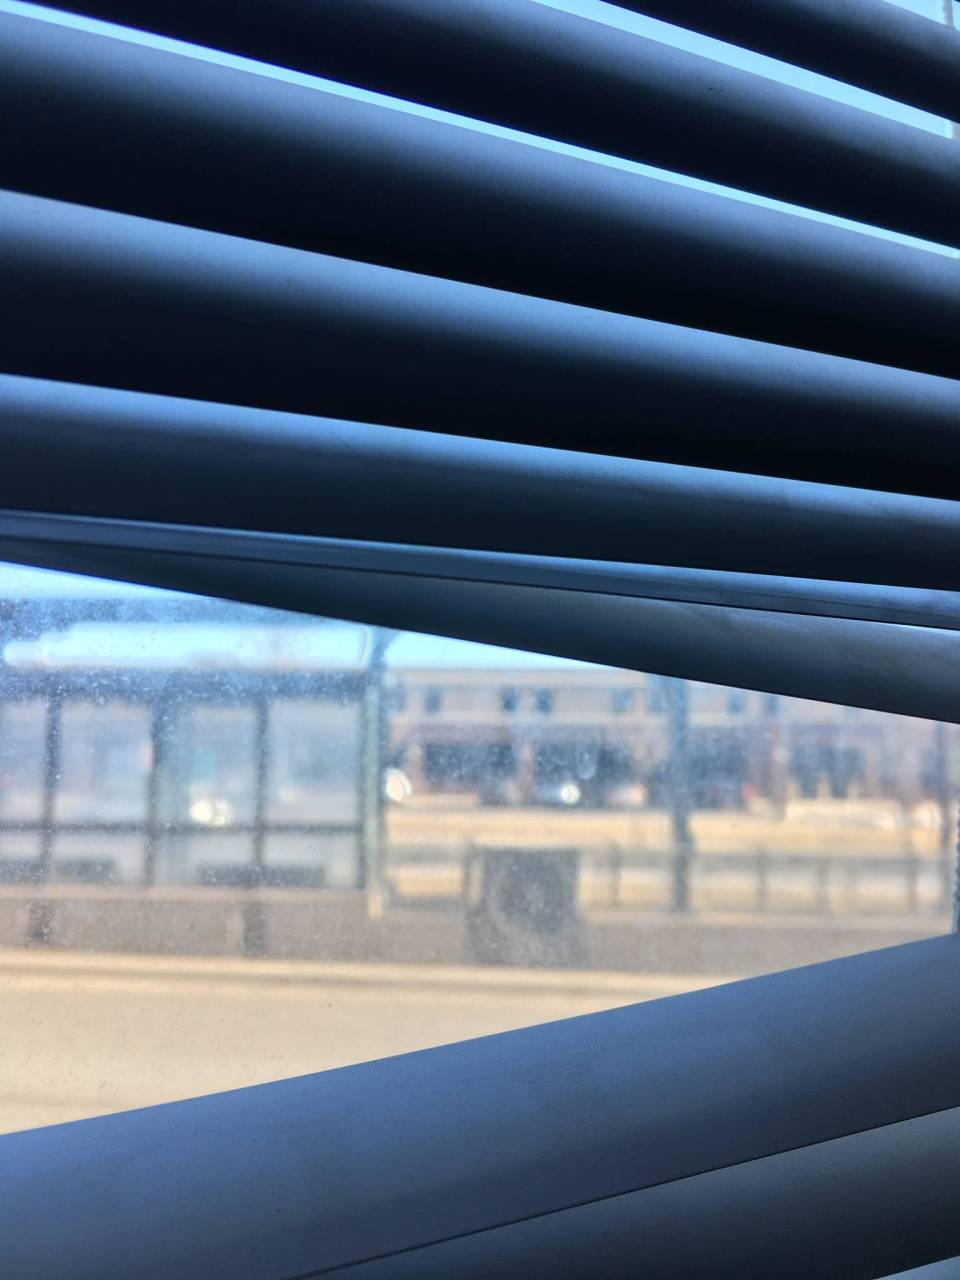 Peeking through the blinds reveals the Westgate Light Rail Station's Eastbound platform just steps across the street from our new HQ. Transit access for the win!